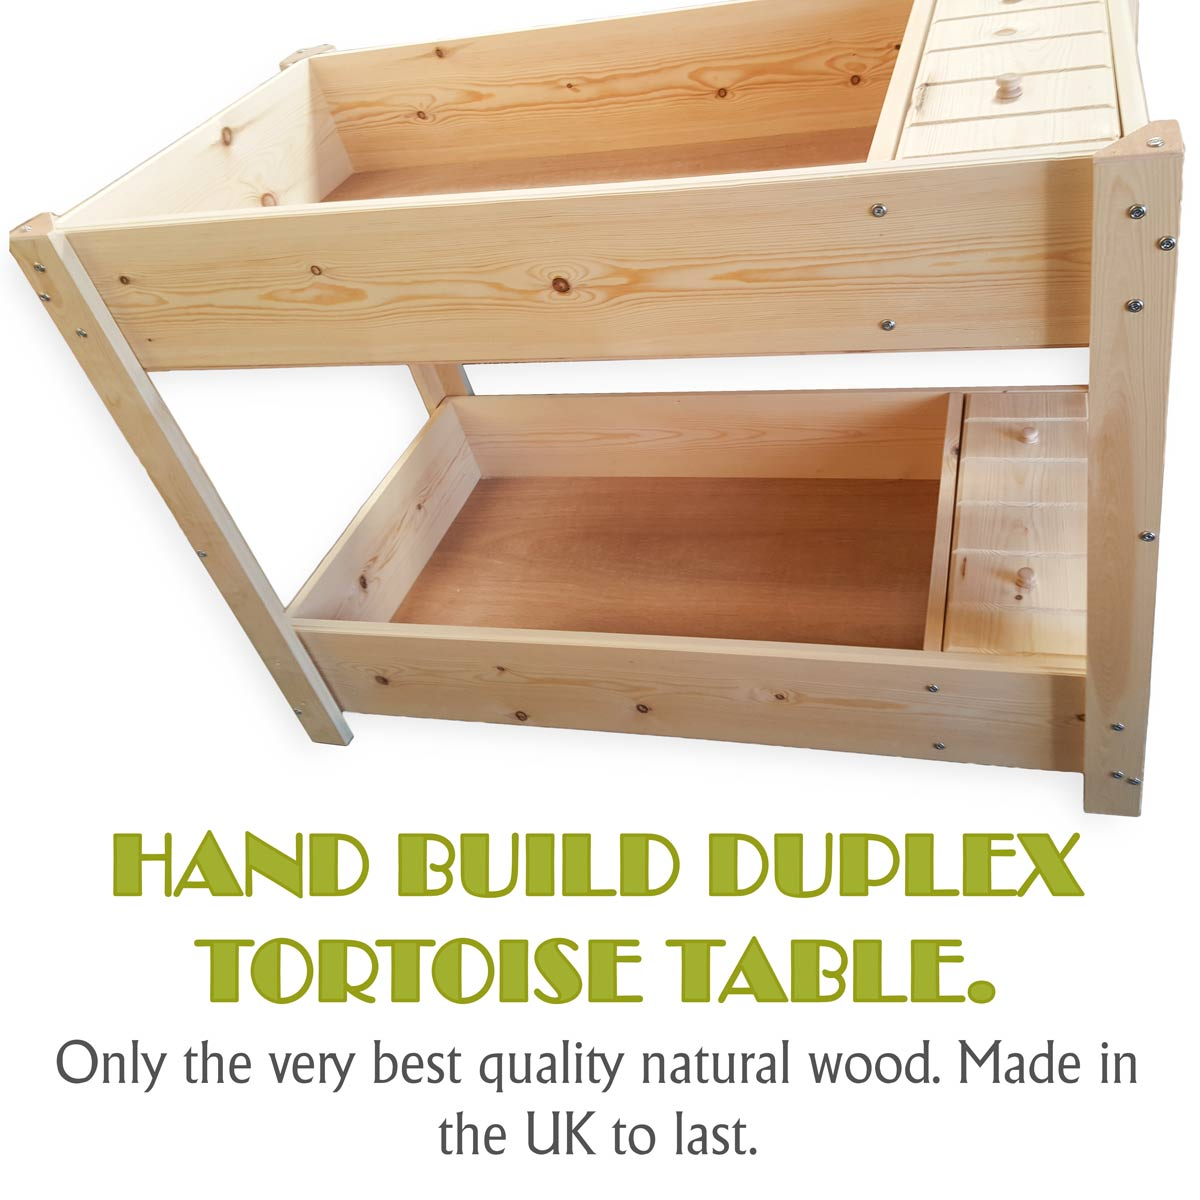 Wooden Tables For Sale Duplex Tortoise Table For Sale British Made In Natural Wood